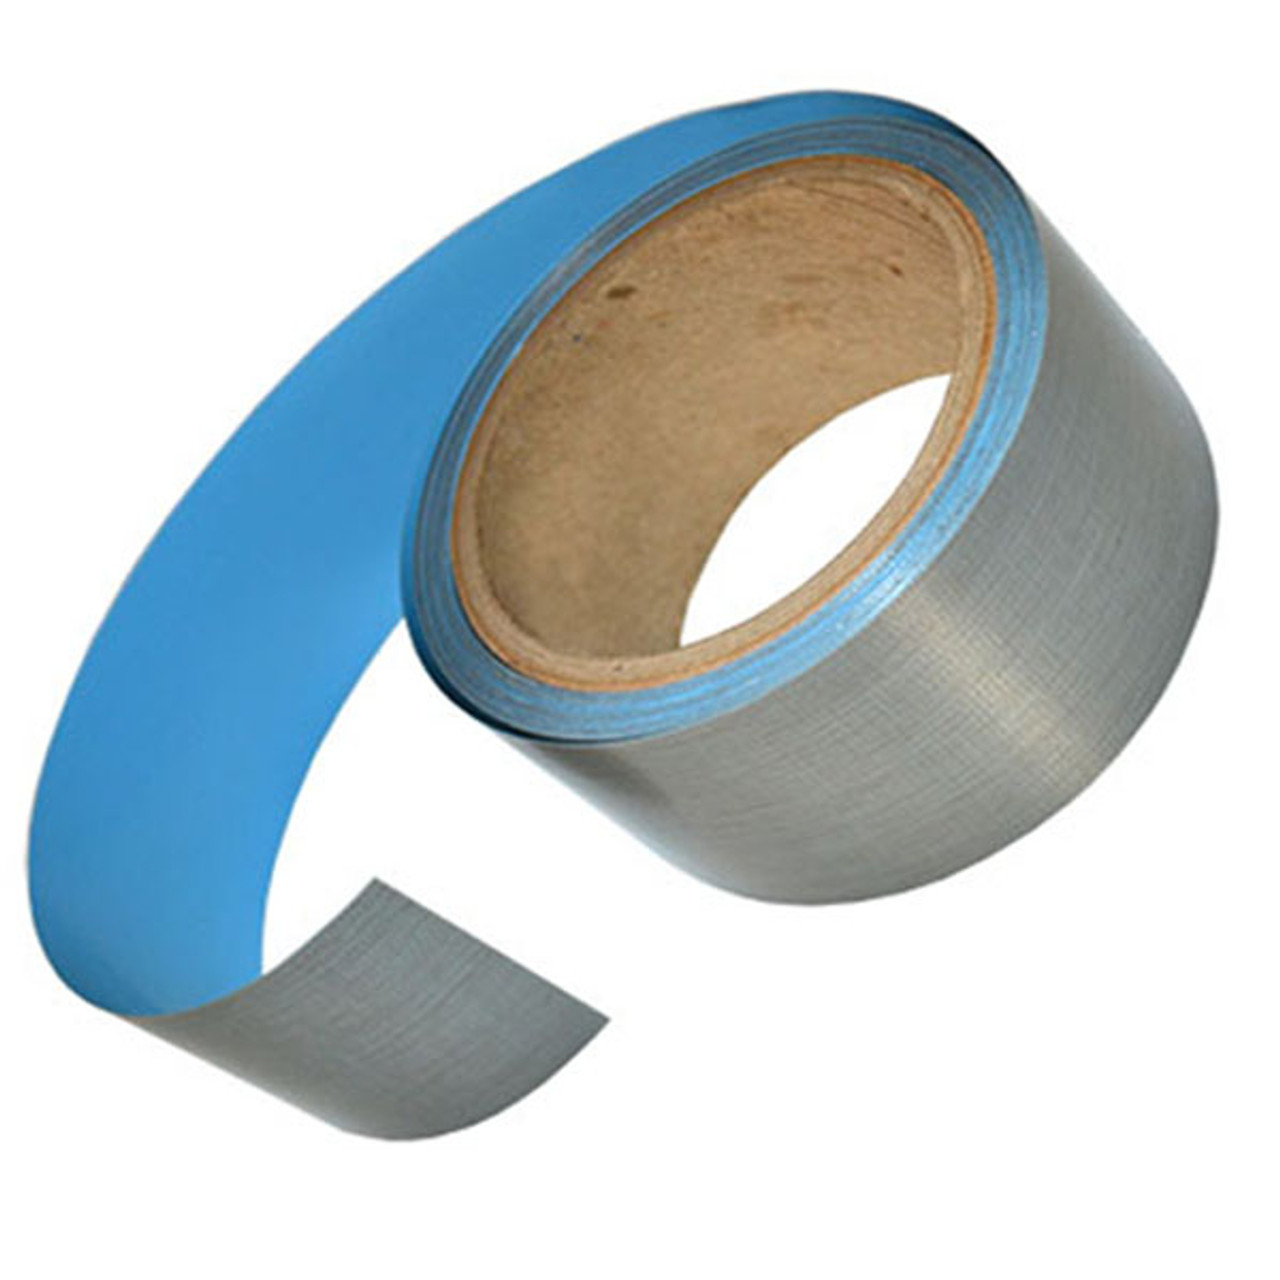 "Seal Bar Teflon Tape 2"" x 3 Yards (108"") - KR3YD001"